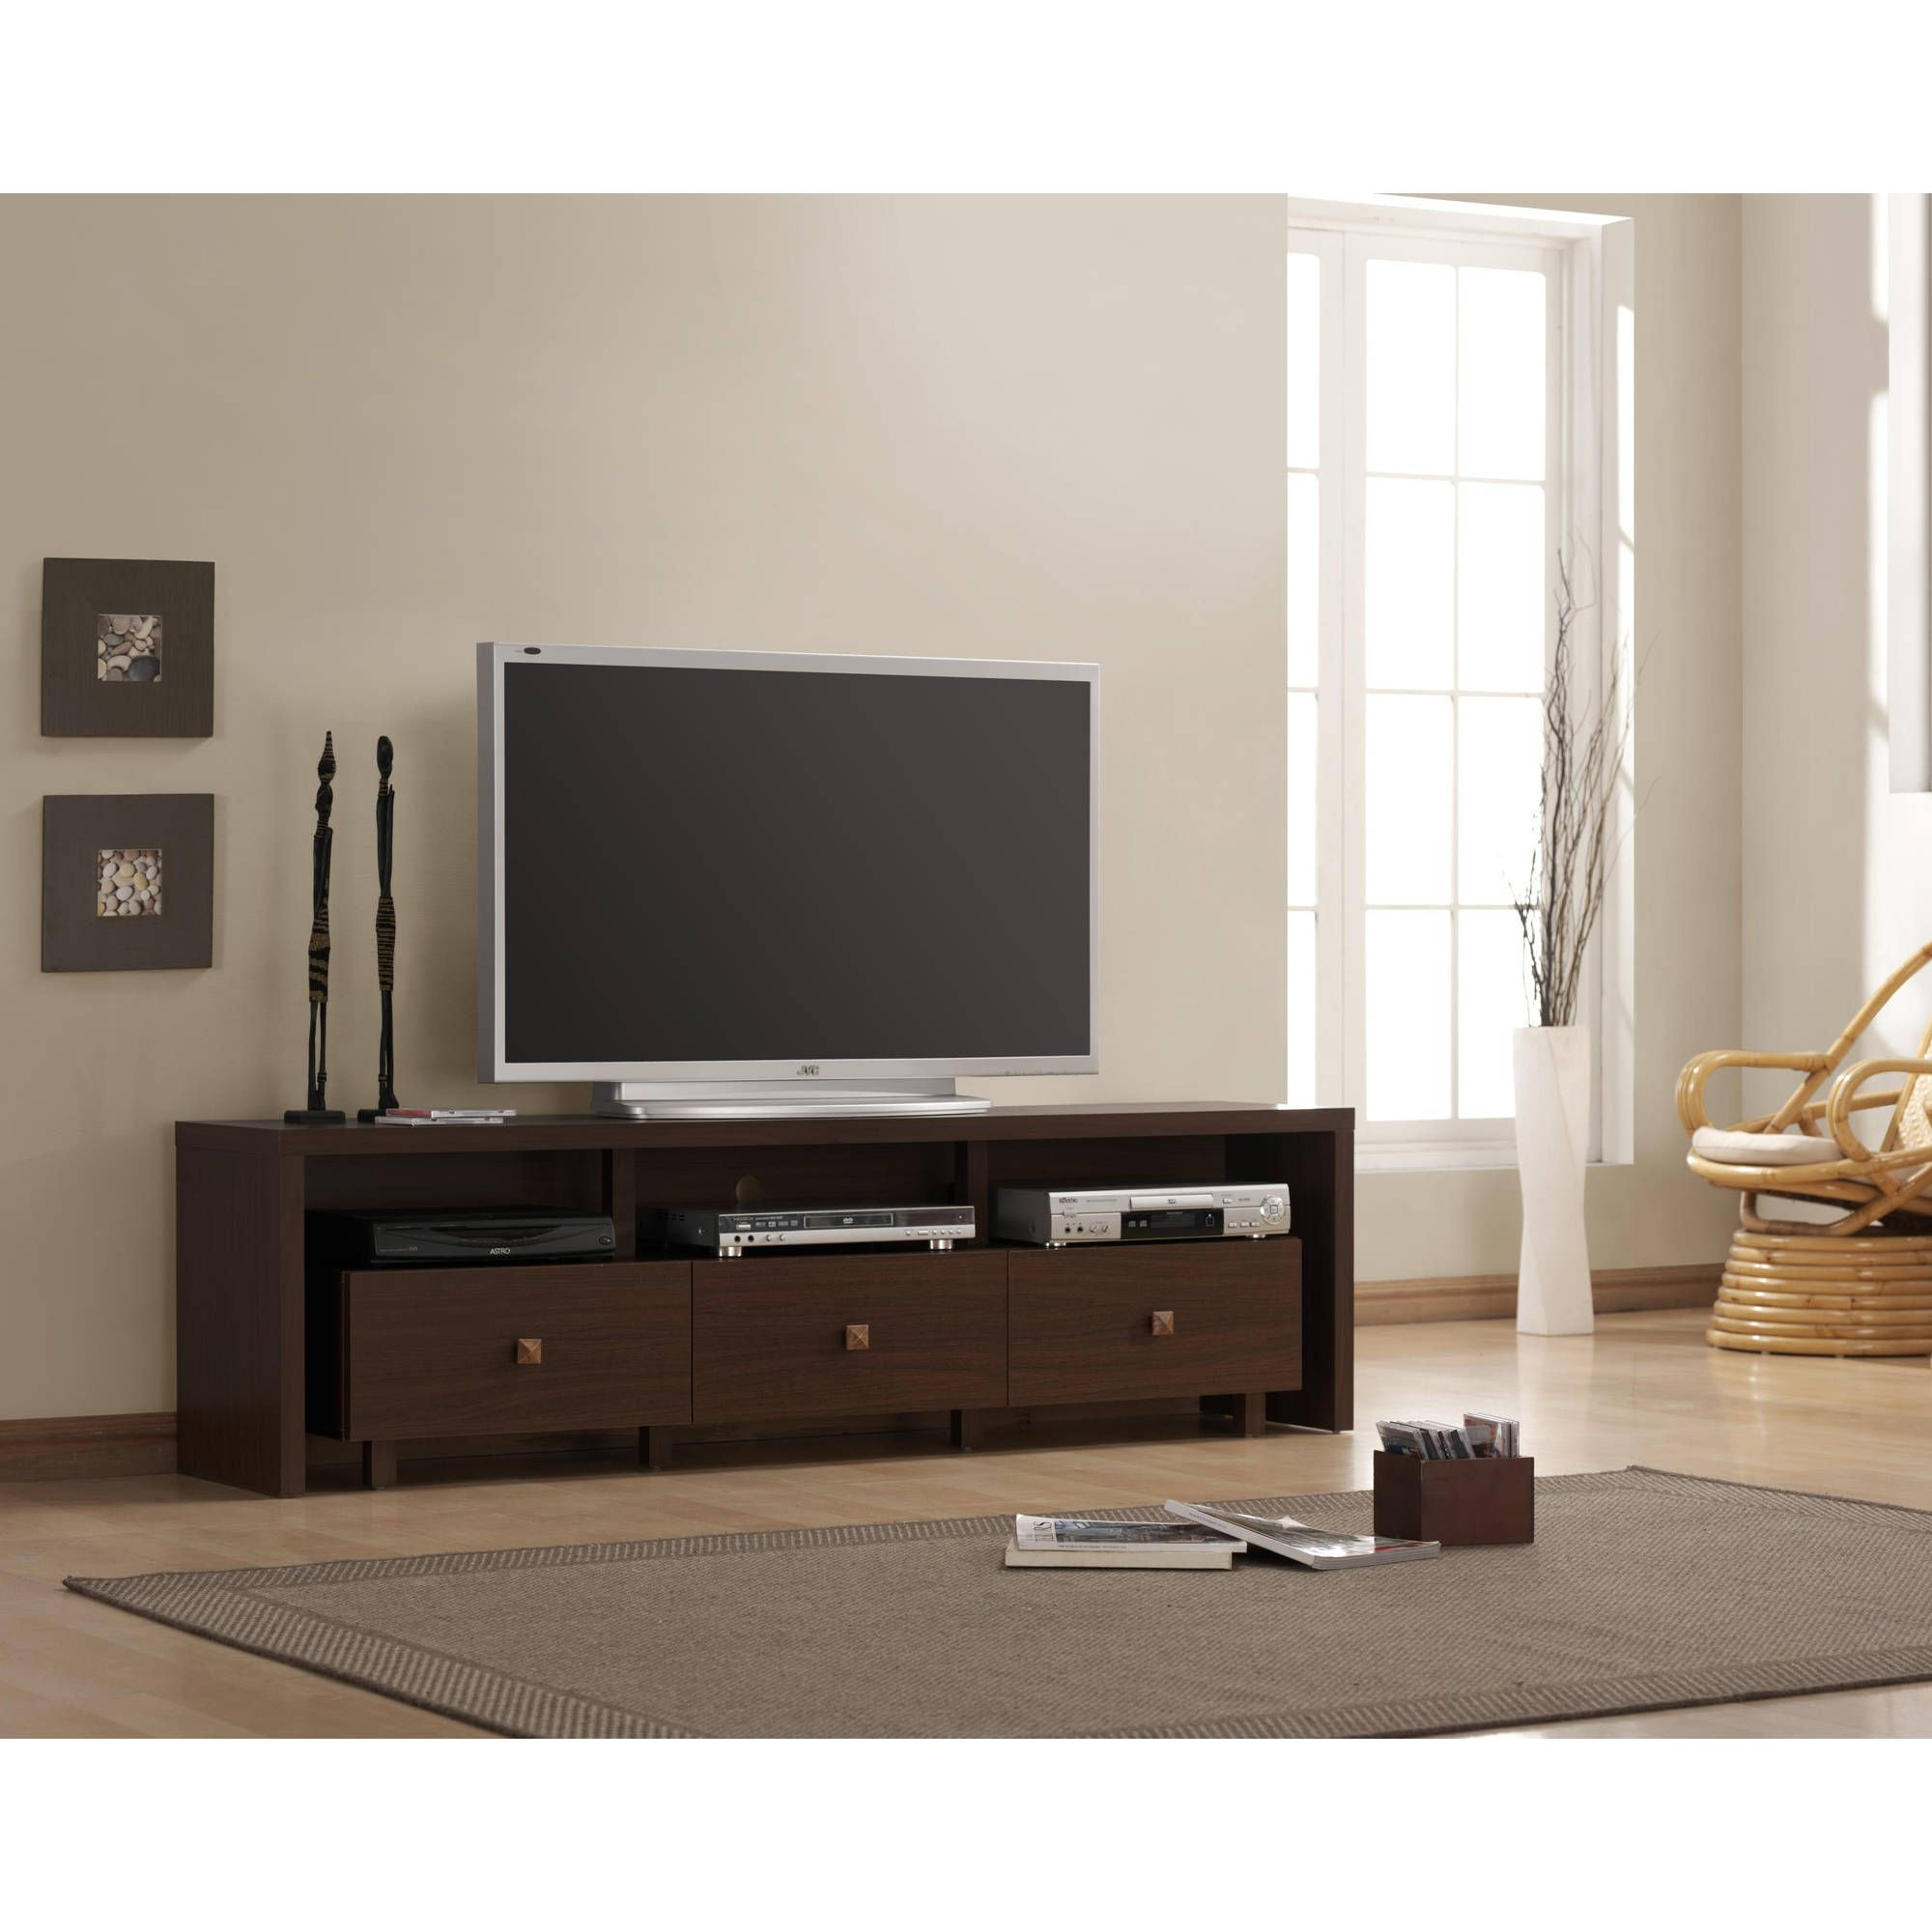 Techni Mobili Palma 3 Drawer TV Cabinet, Multiple Finishes For TVs Up To 70  Inch, Brown